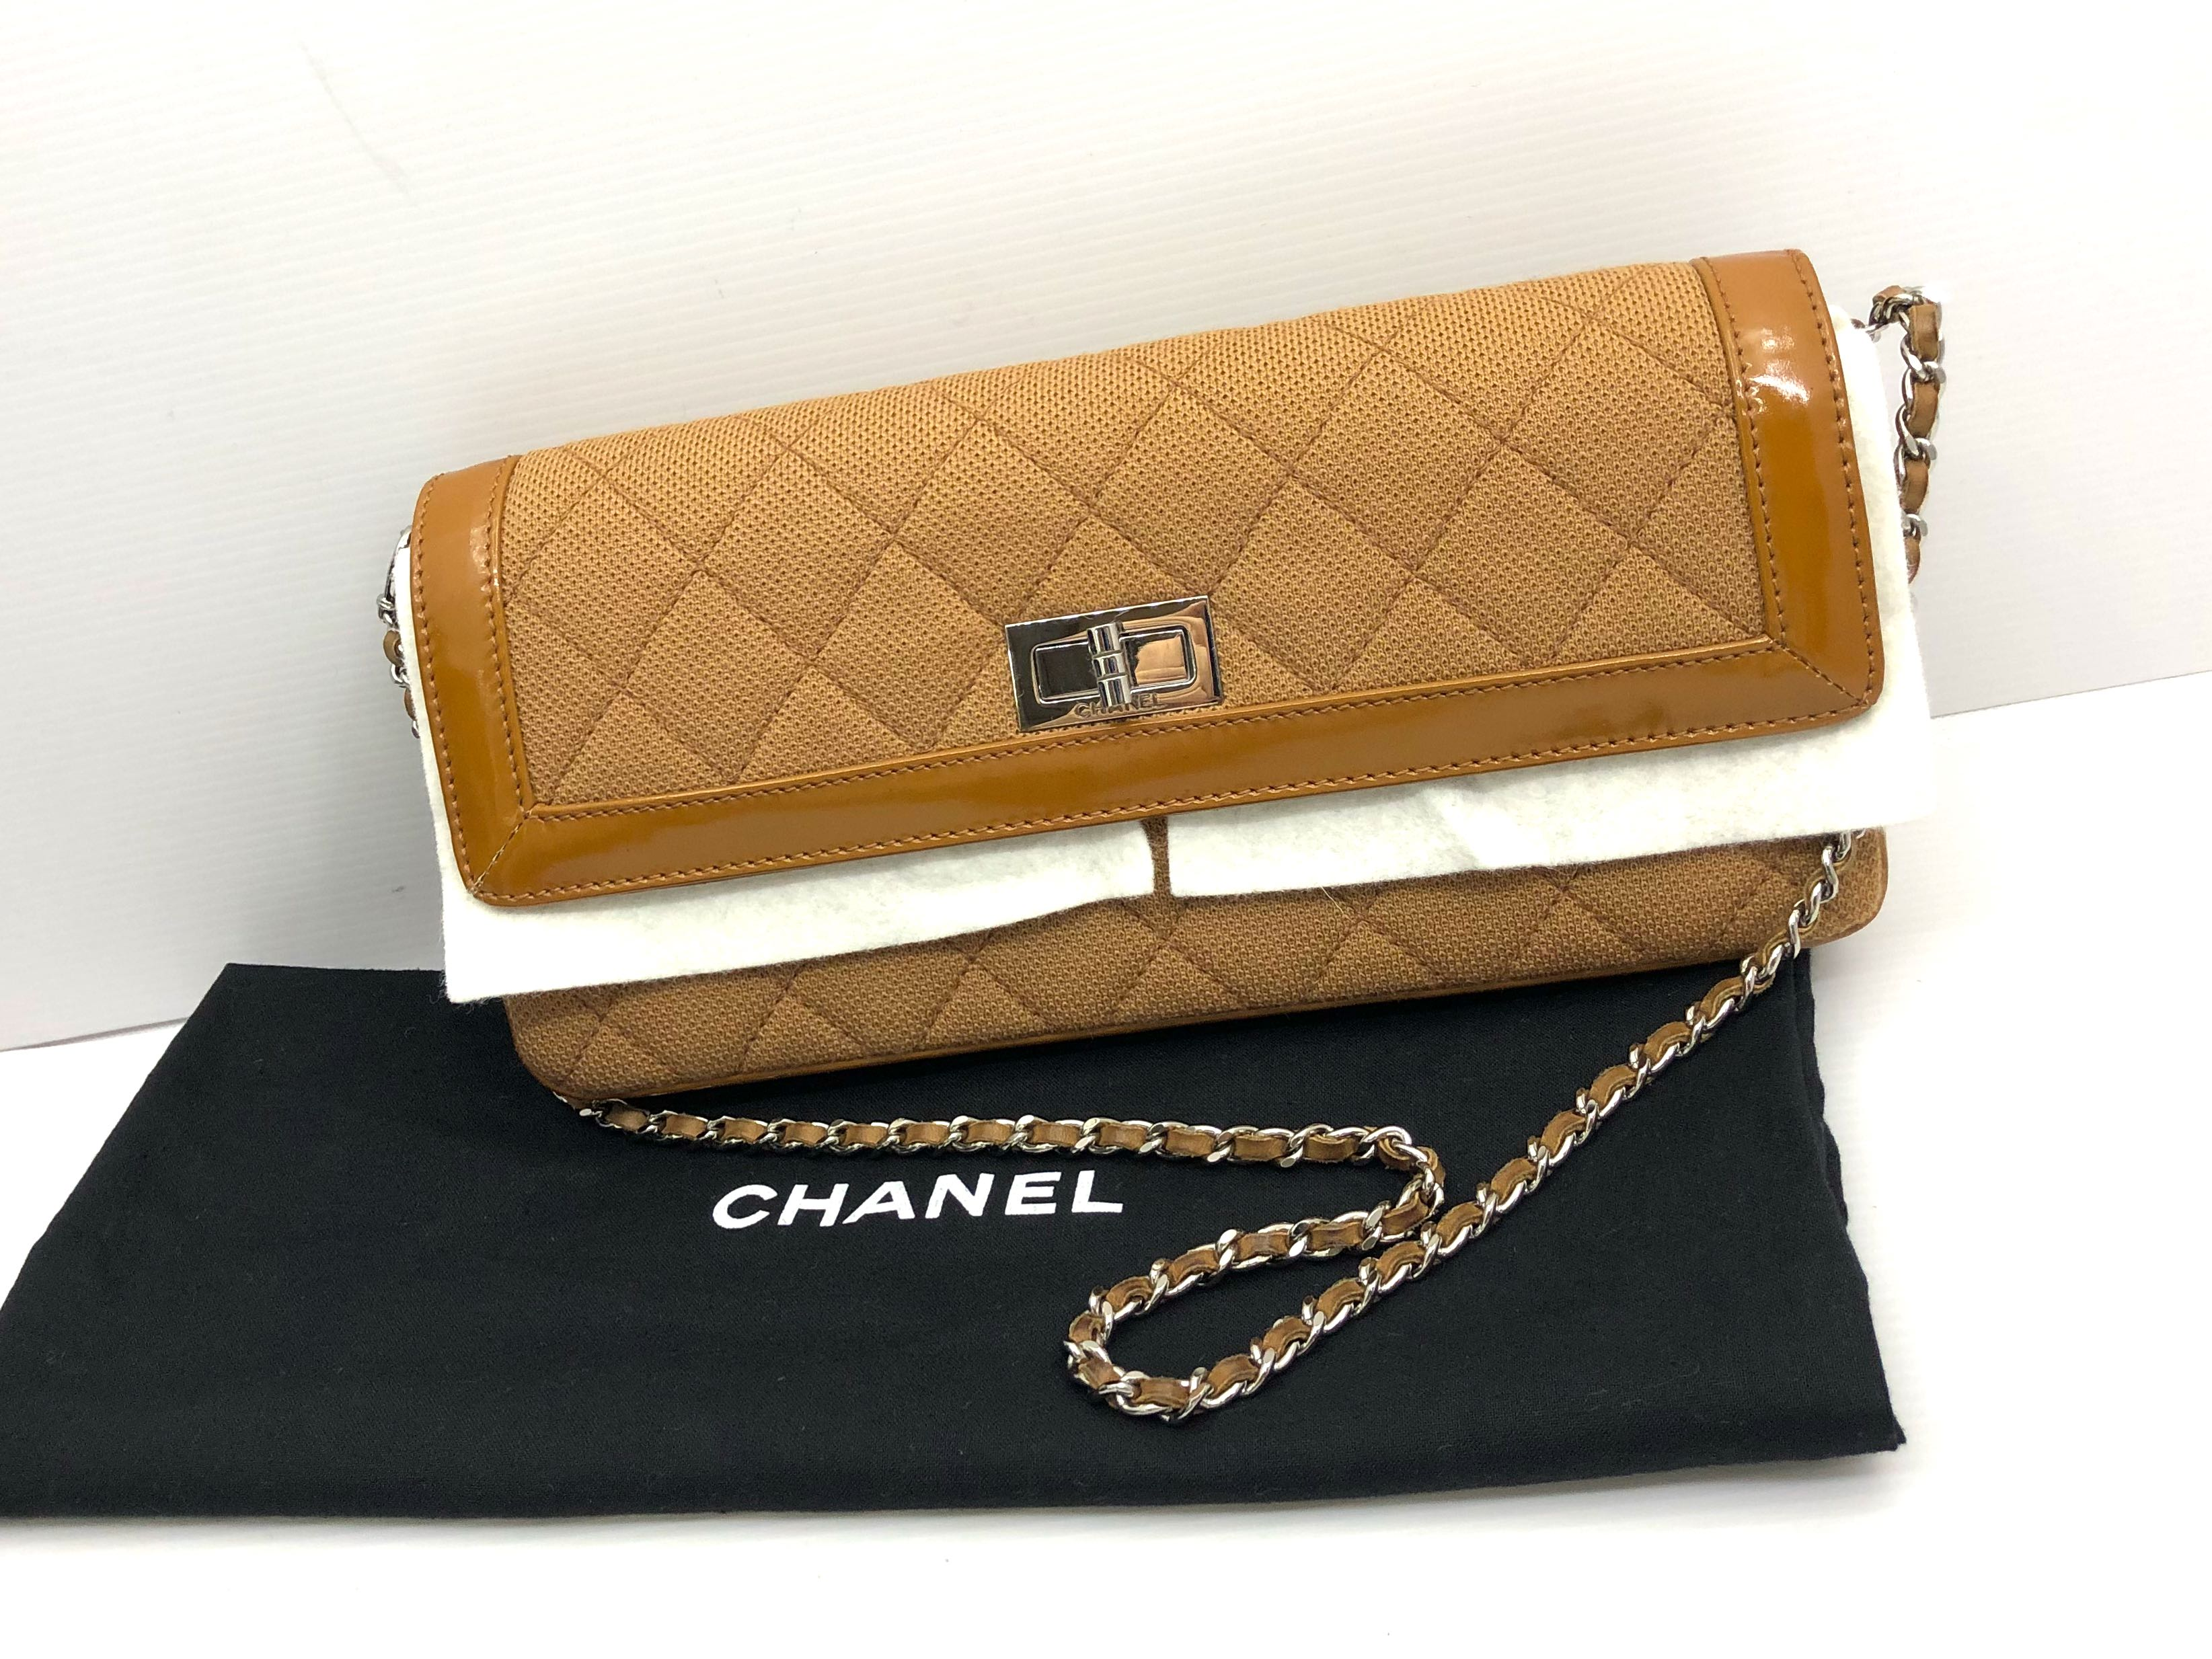 69f287cc293d CHANEL 2.55 CANVAS CHAIN BAG 187003386, Women's Fashion, Bags ...